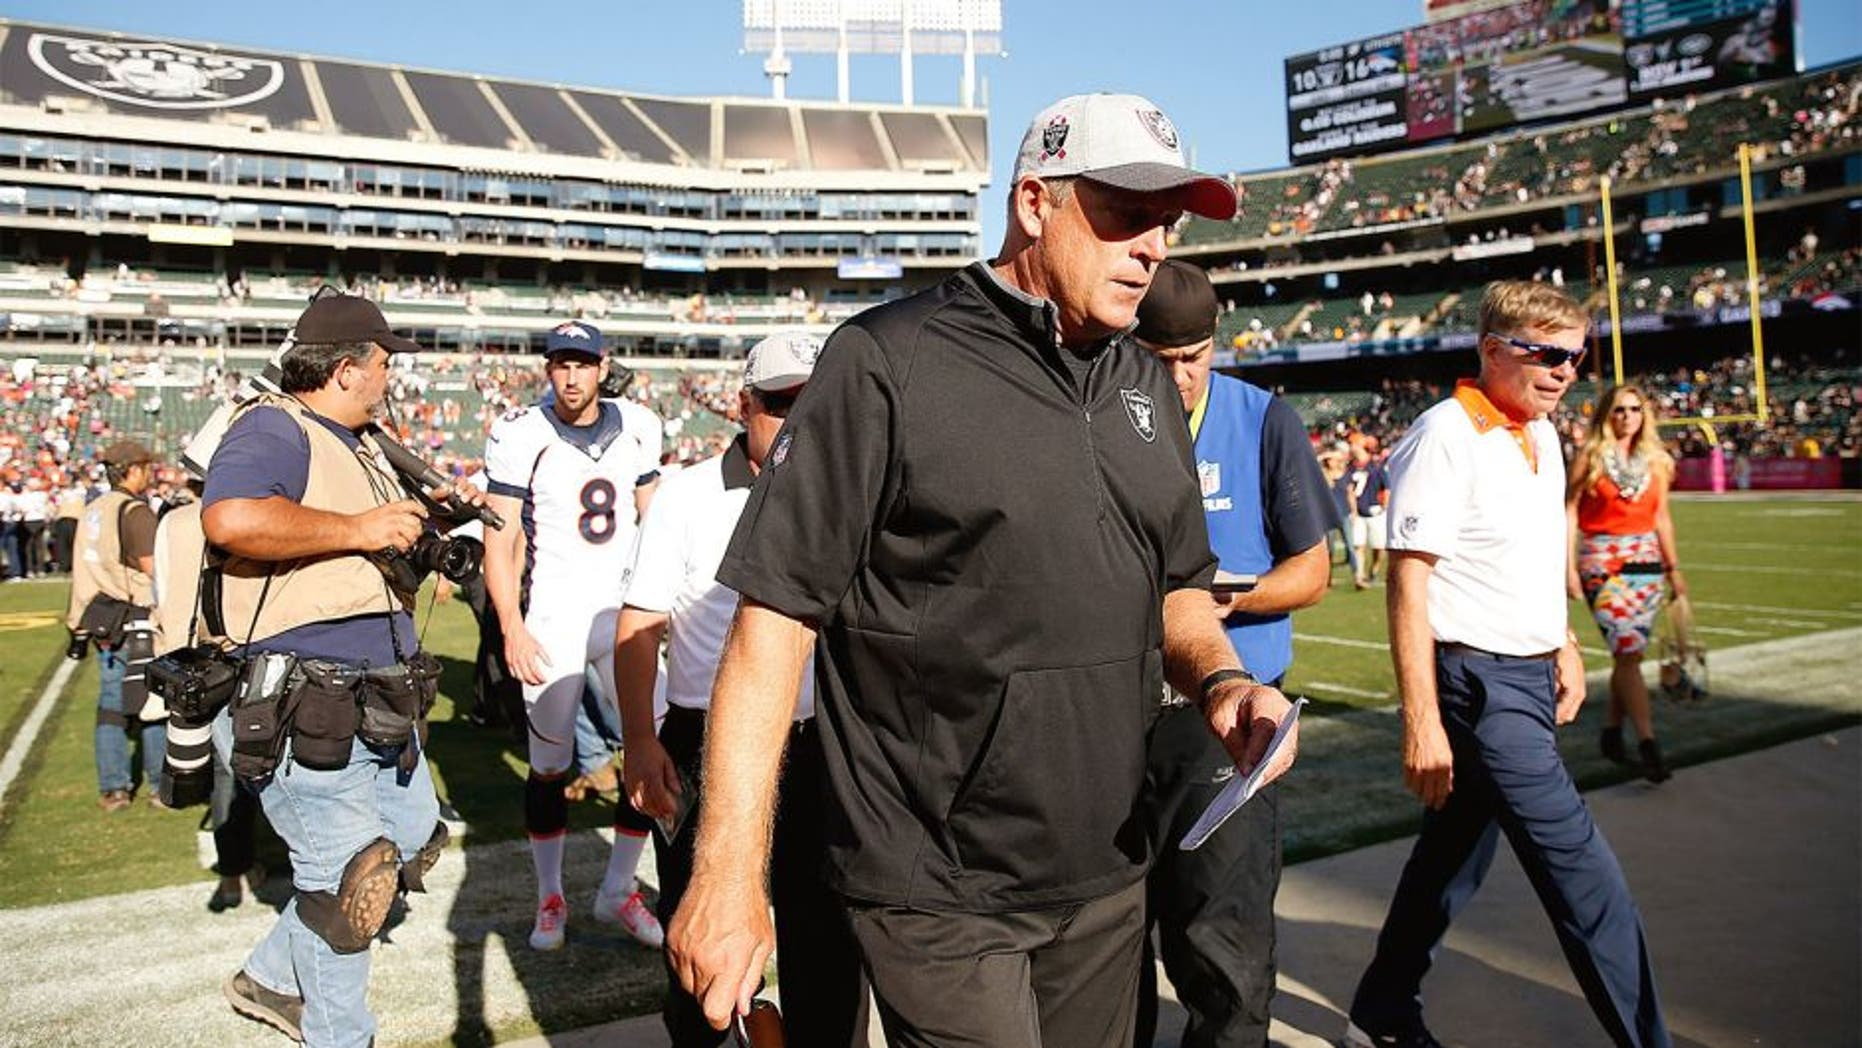 OAKLAND, CA - OCTOBER 11: head coach Jack Del Rio of the Oakland Raiders leaves the field after a loss to the Denver Broncos at O.co Coliseum on October 11, 2015 in Oakland, California. (Photo by Ezra Shaw/Getty Images)